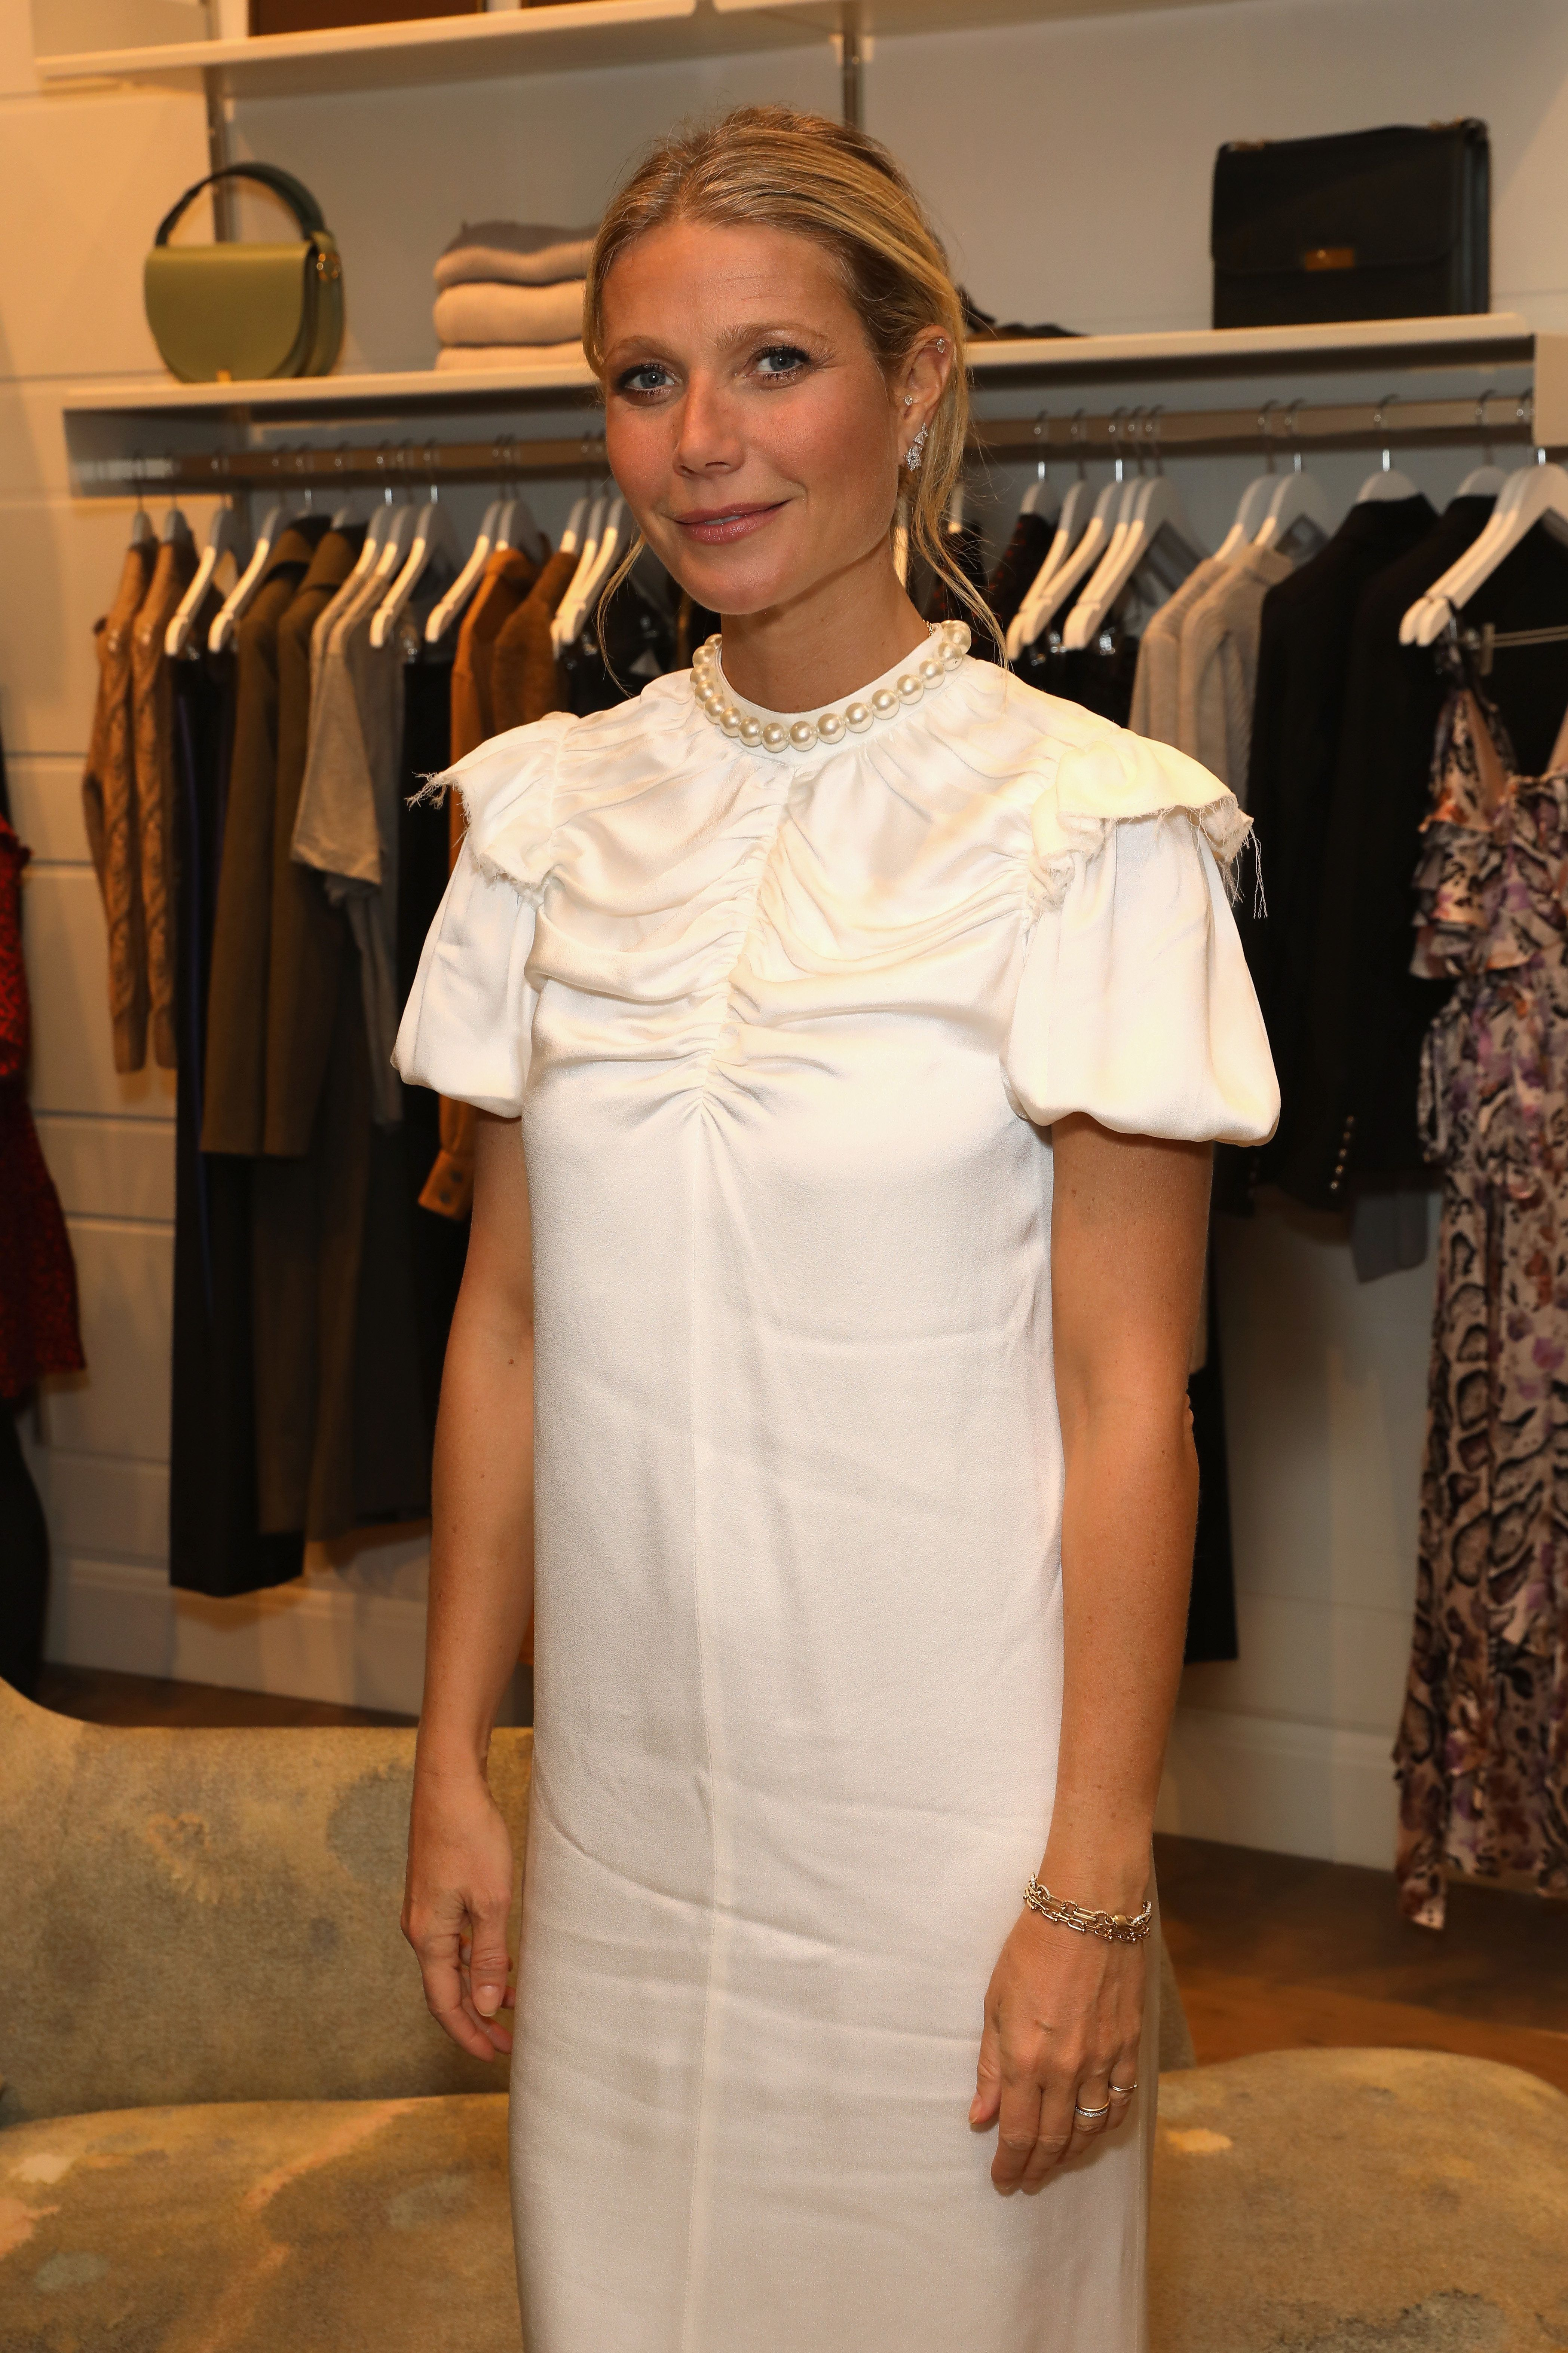 Gwyneth Paltrow's Goop Has Been Reported to British Regulators Over 'Misleading and Potentially Dangerous